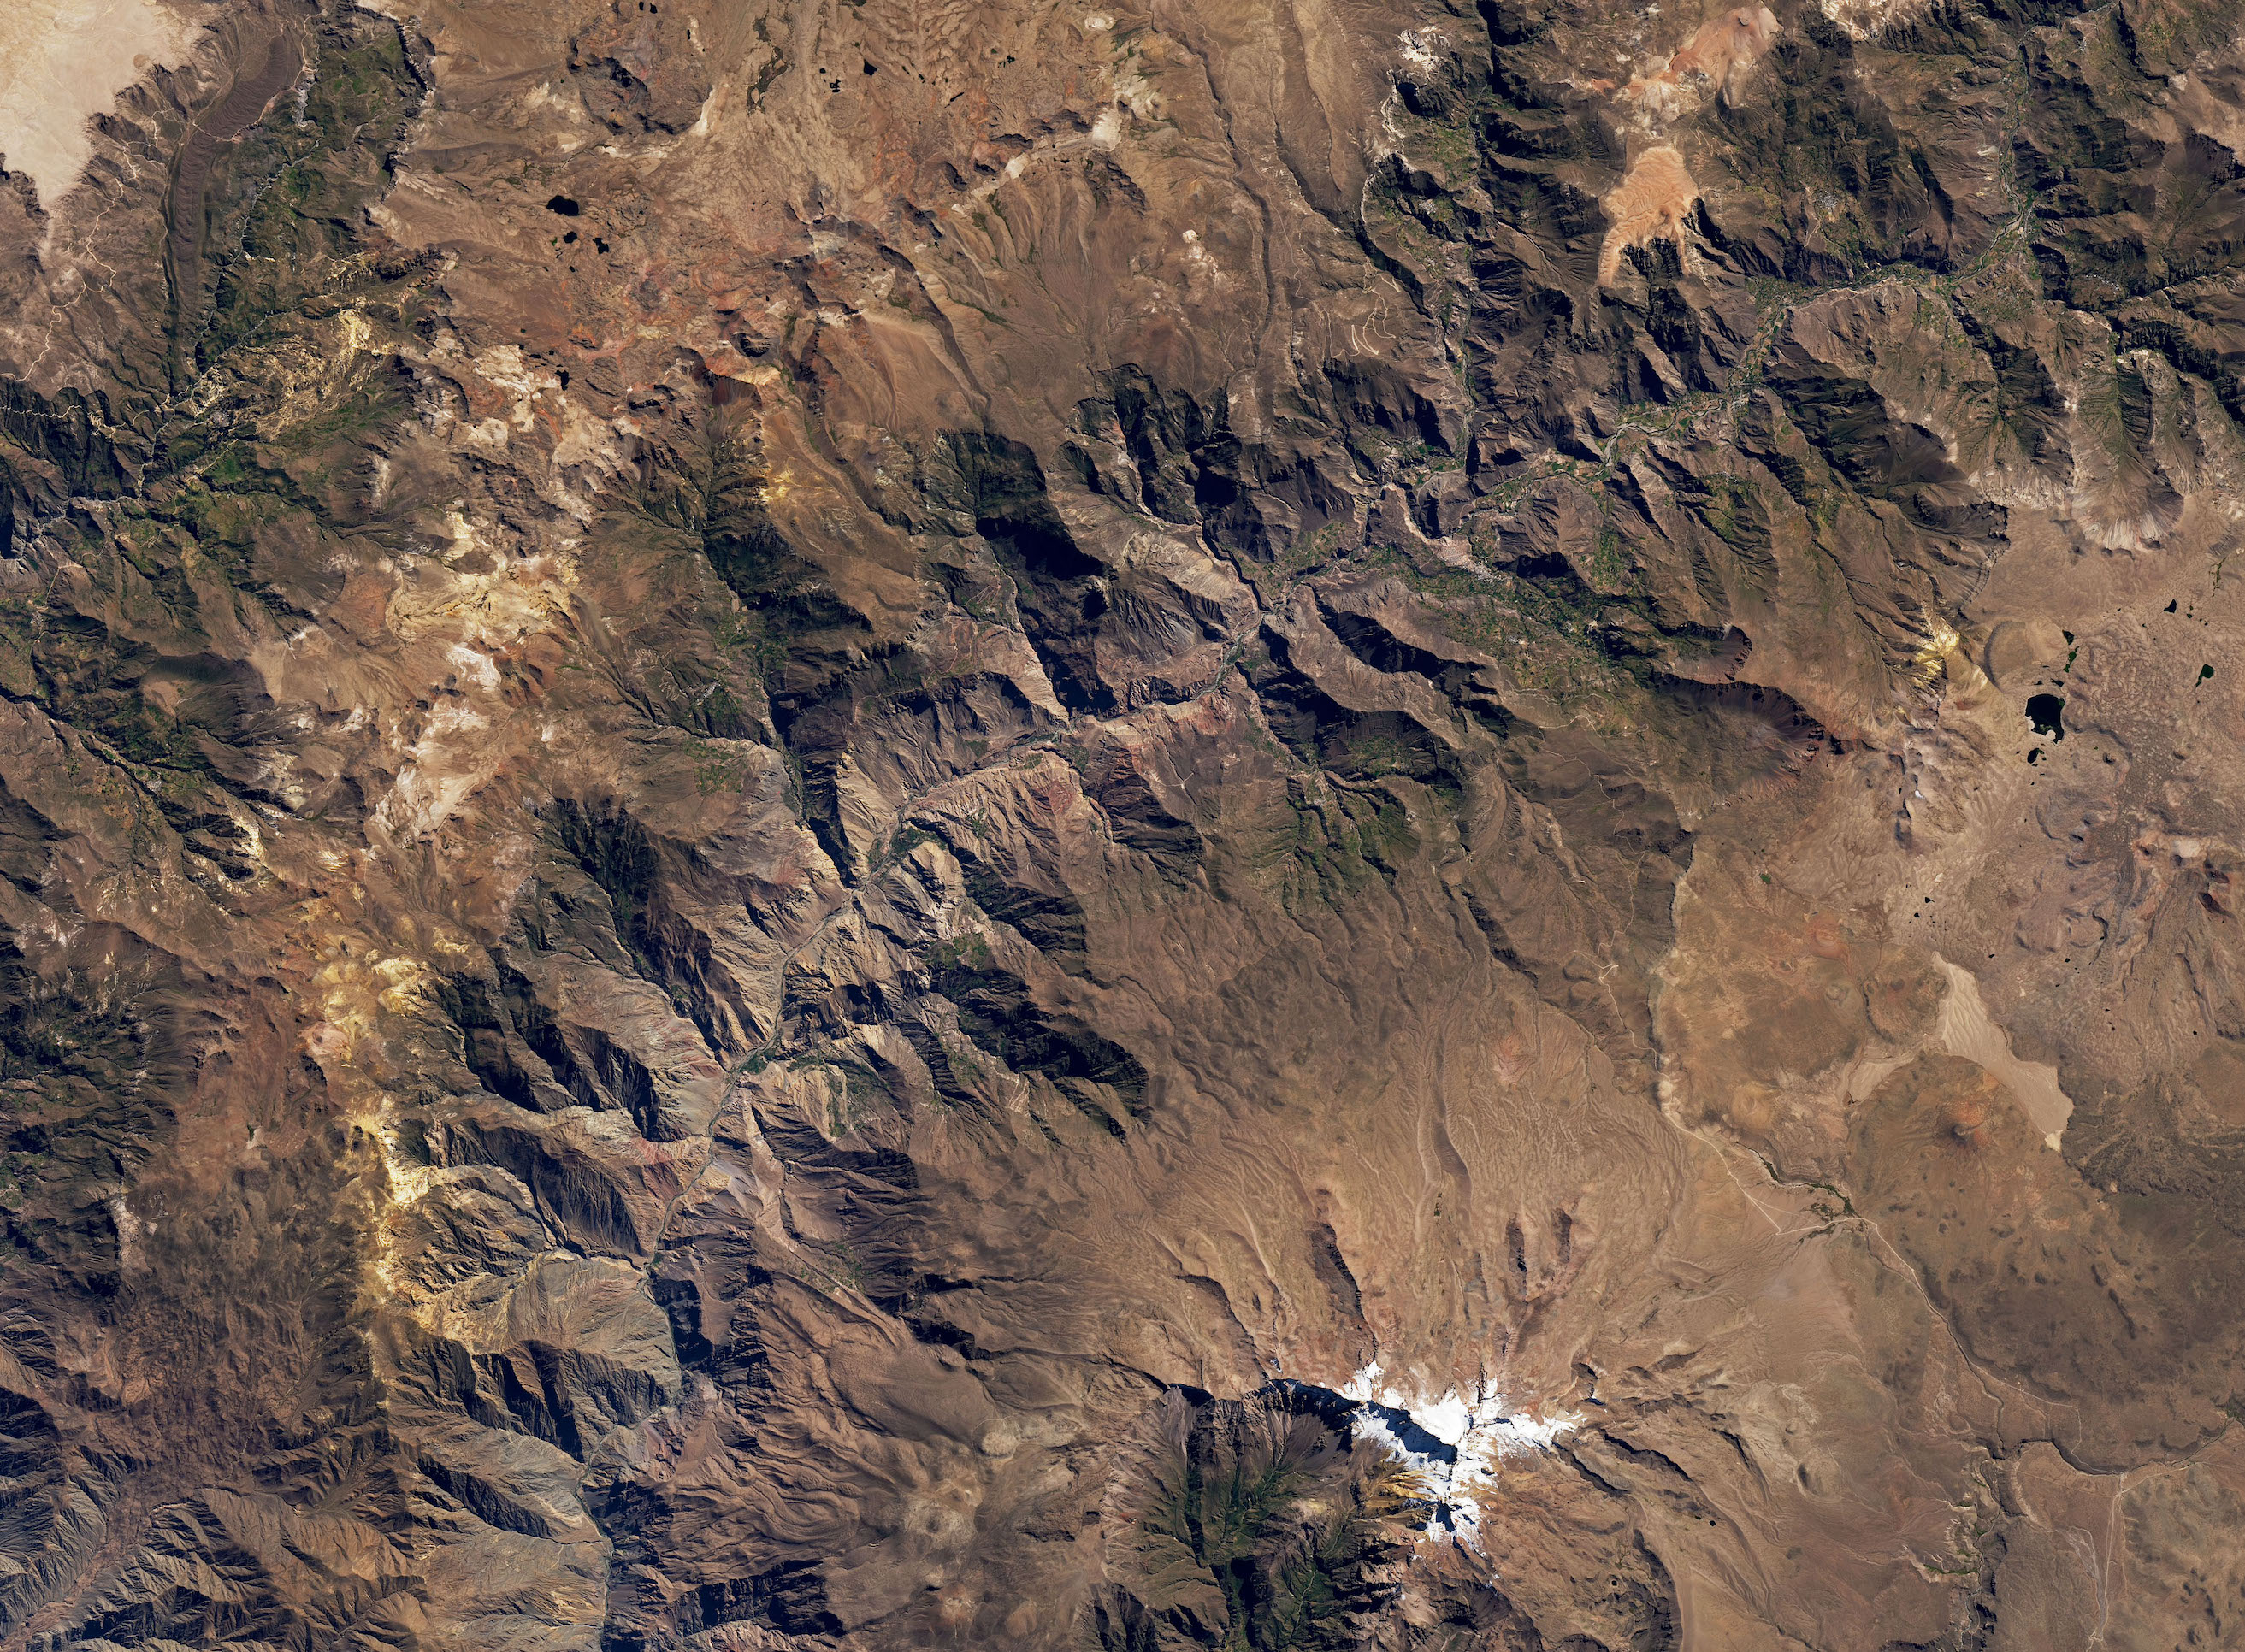 Today's Image of the Day comes from the NASA Earth Observatory and features a look at the depths of the Cotahuasi Canyon in Peru.